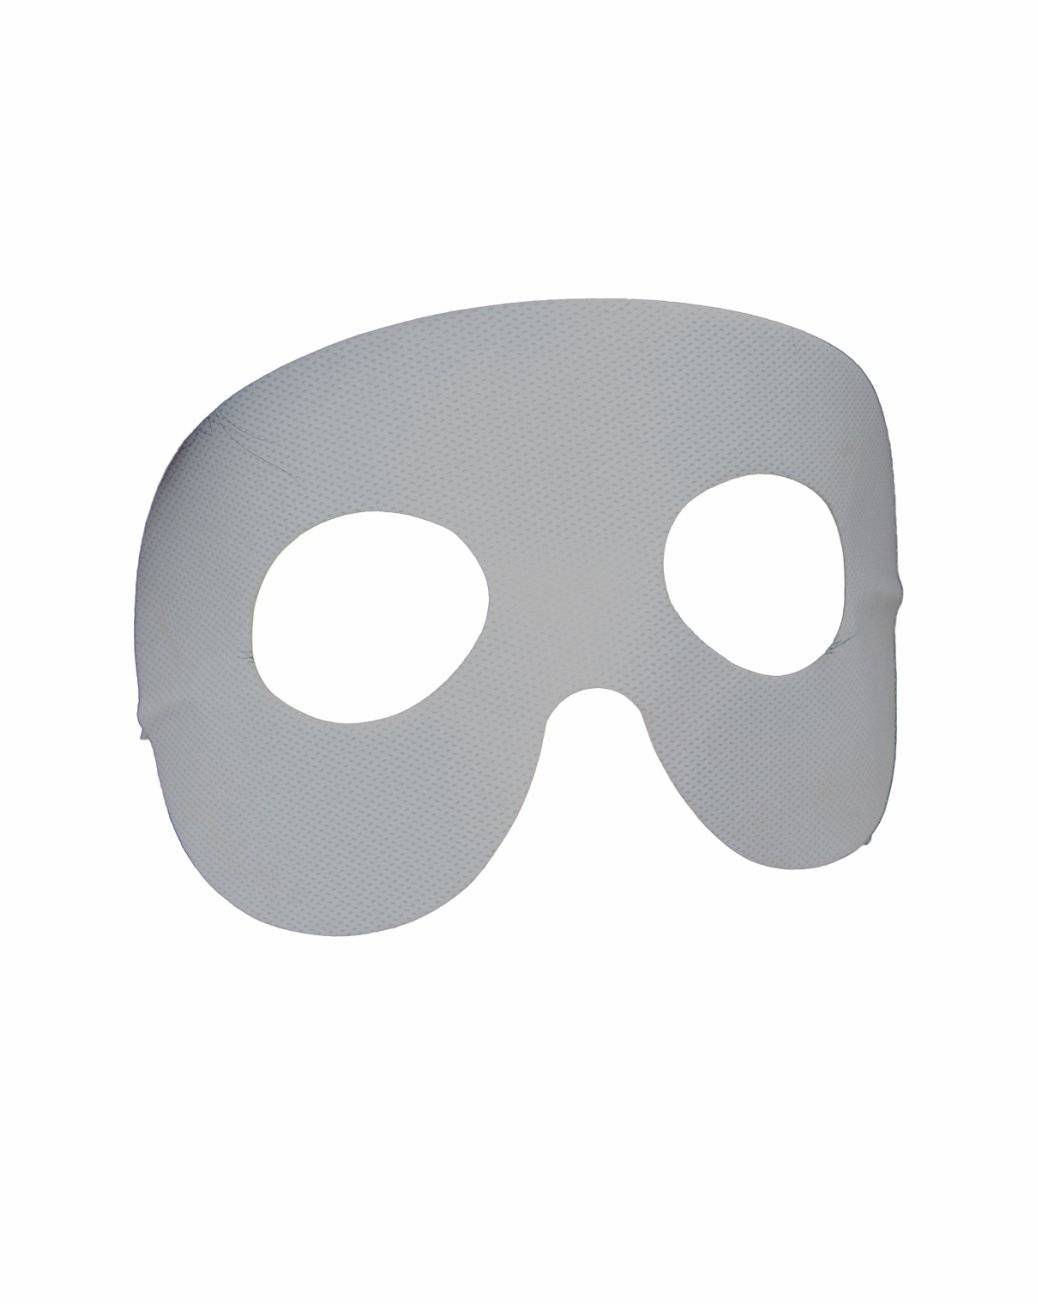 eye mask conductive patch